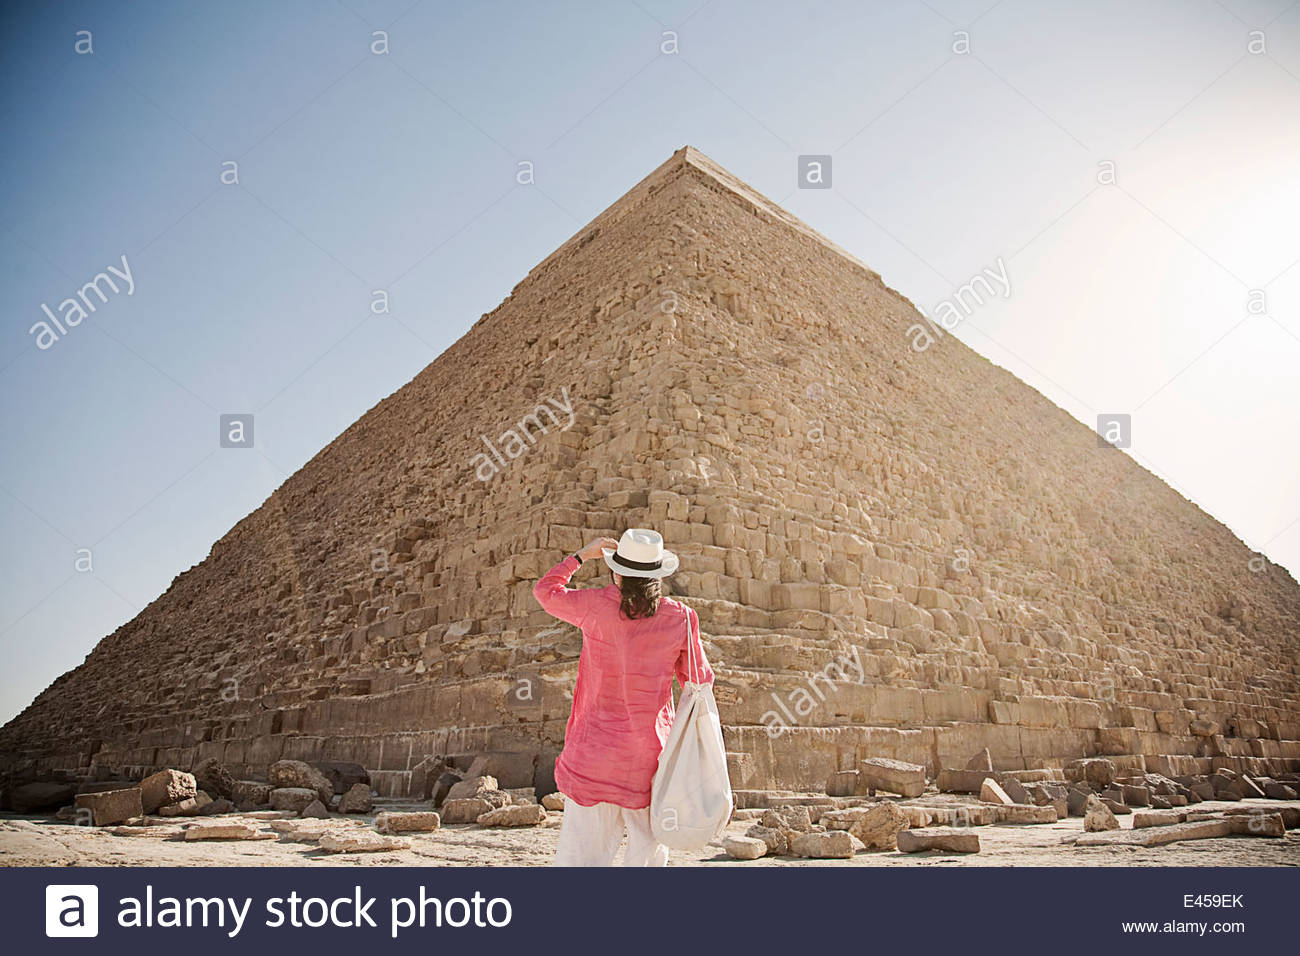 Femme mature à tourisme la grande pyramide de Giza, Egypte Photo Stock